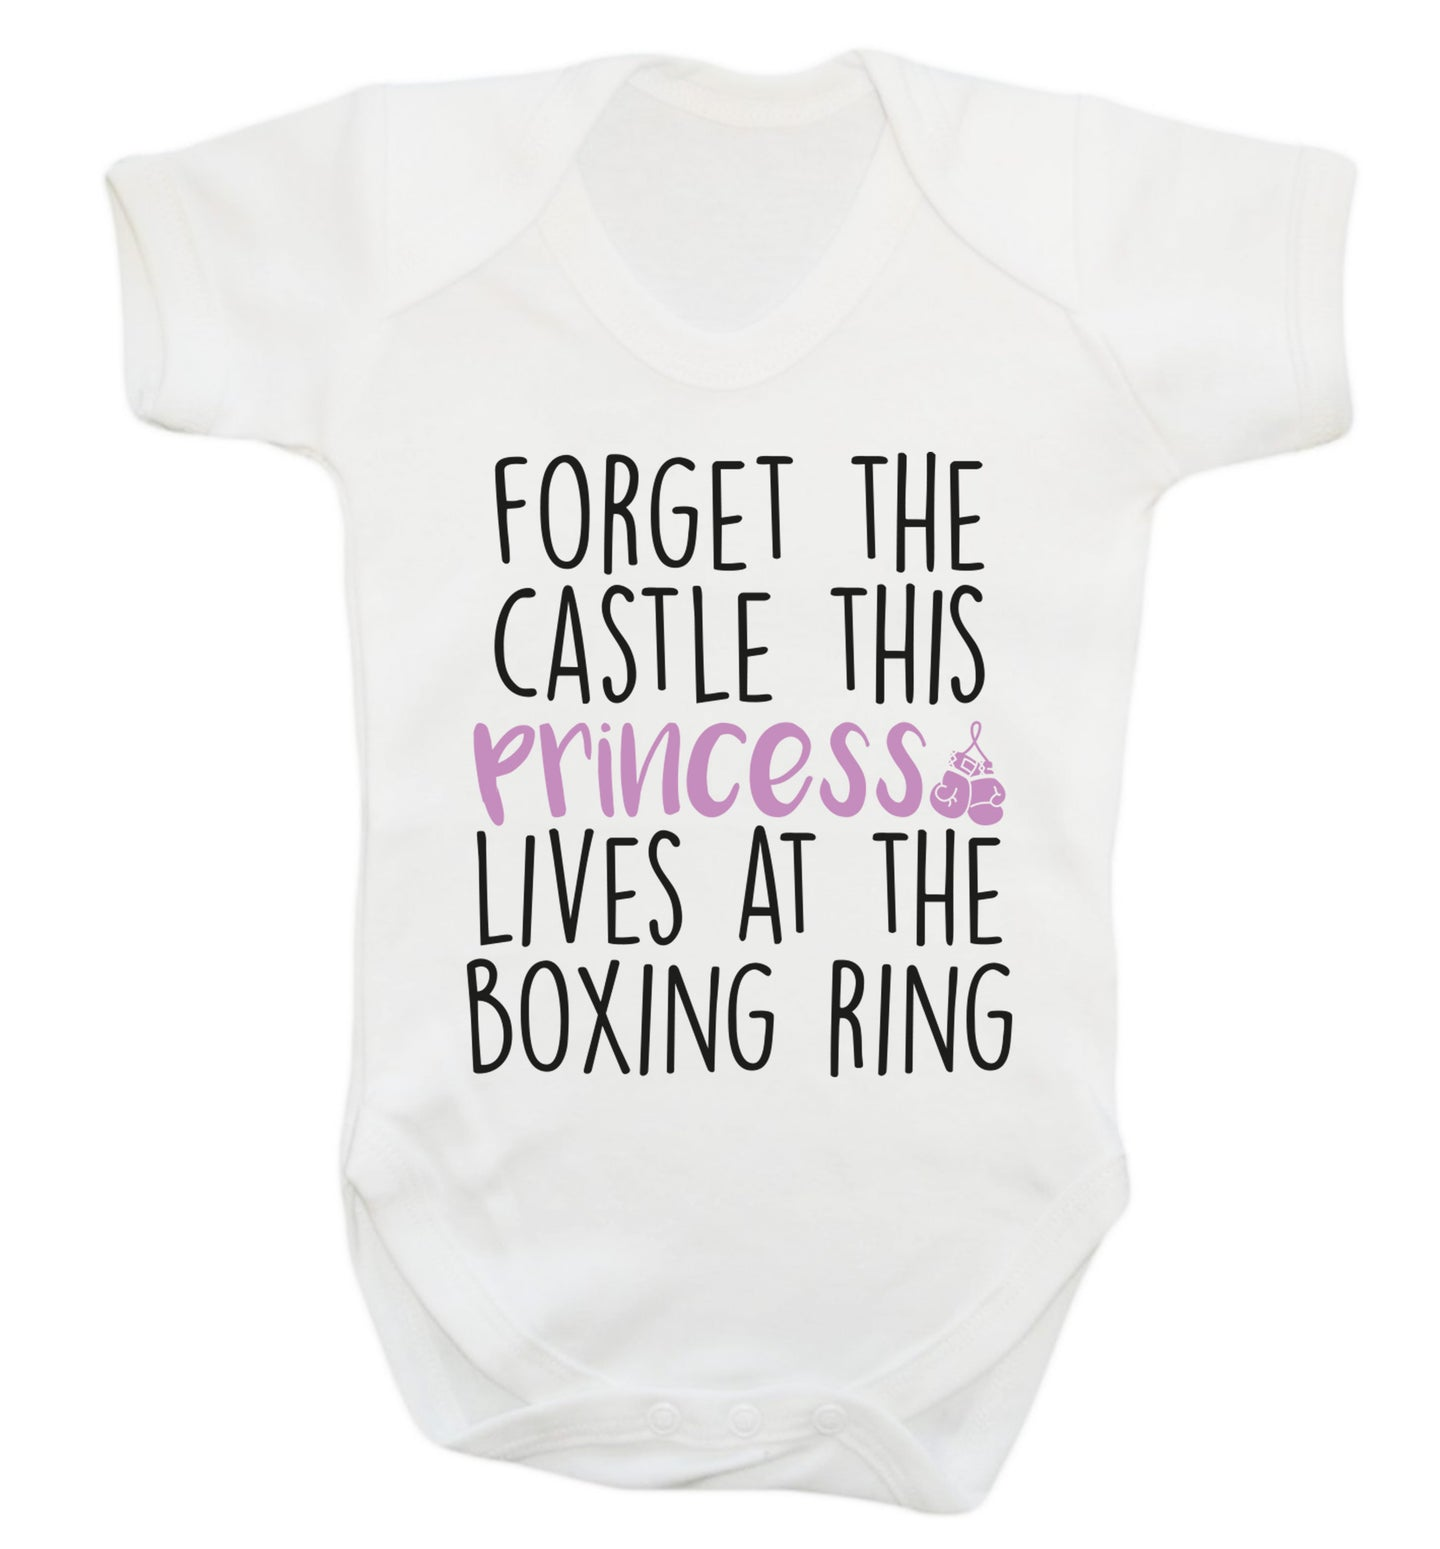 Forget the castle this princess lives at the boxing ring Baby Vest white 18-24 months